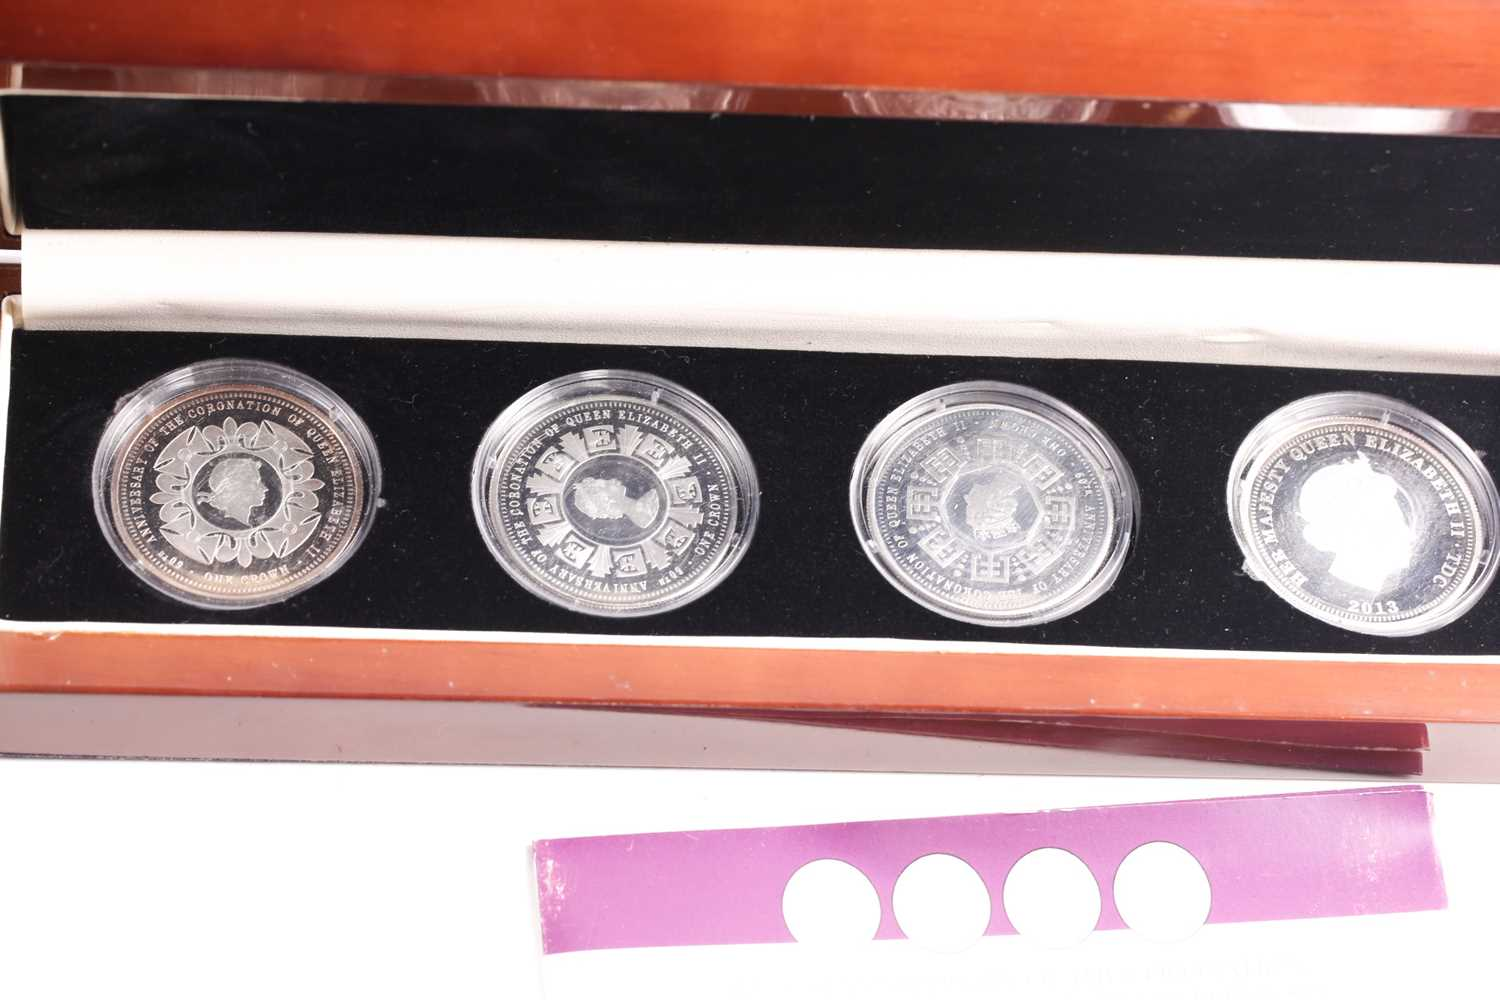 Eight boxed sets of commemorative coins, comprising: 'Squadrons of the Royal Air Force' four-coin - Image 9 of 9